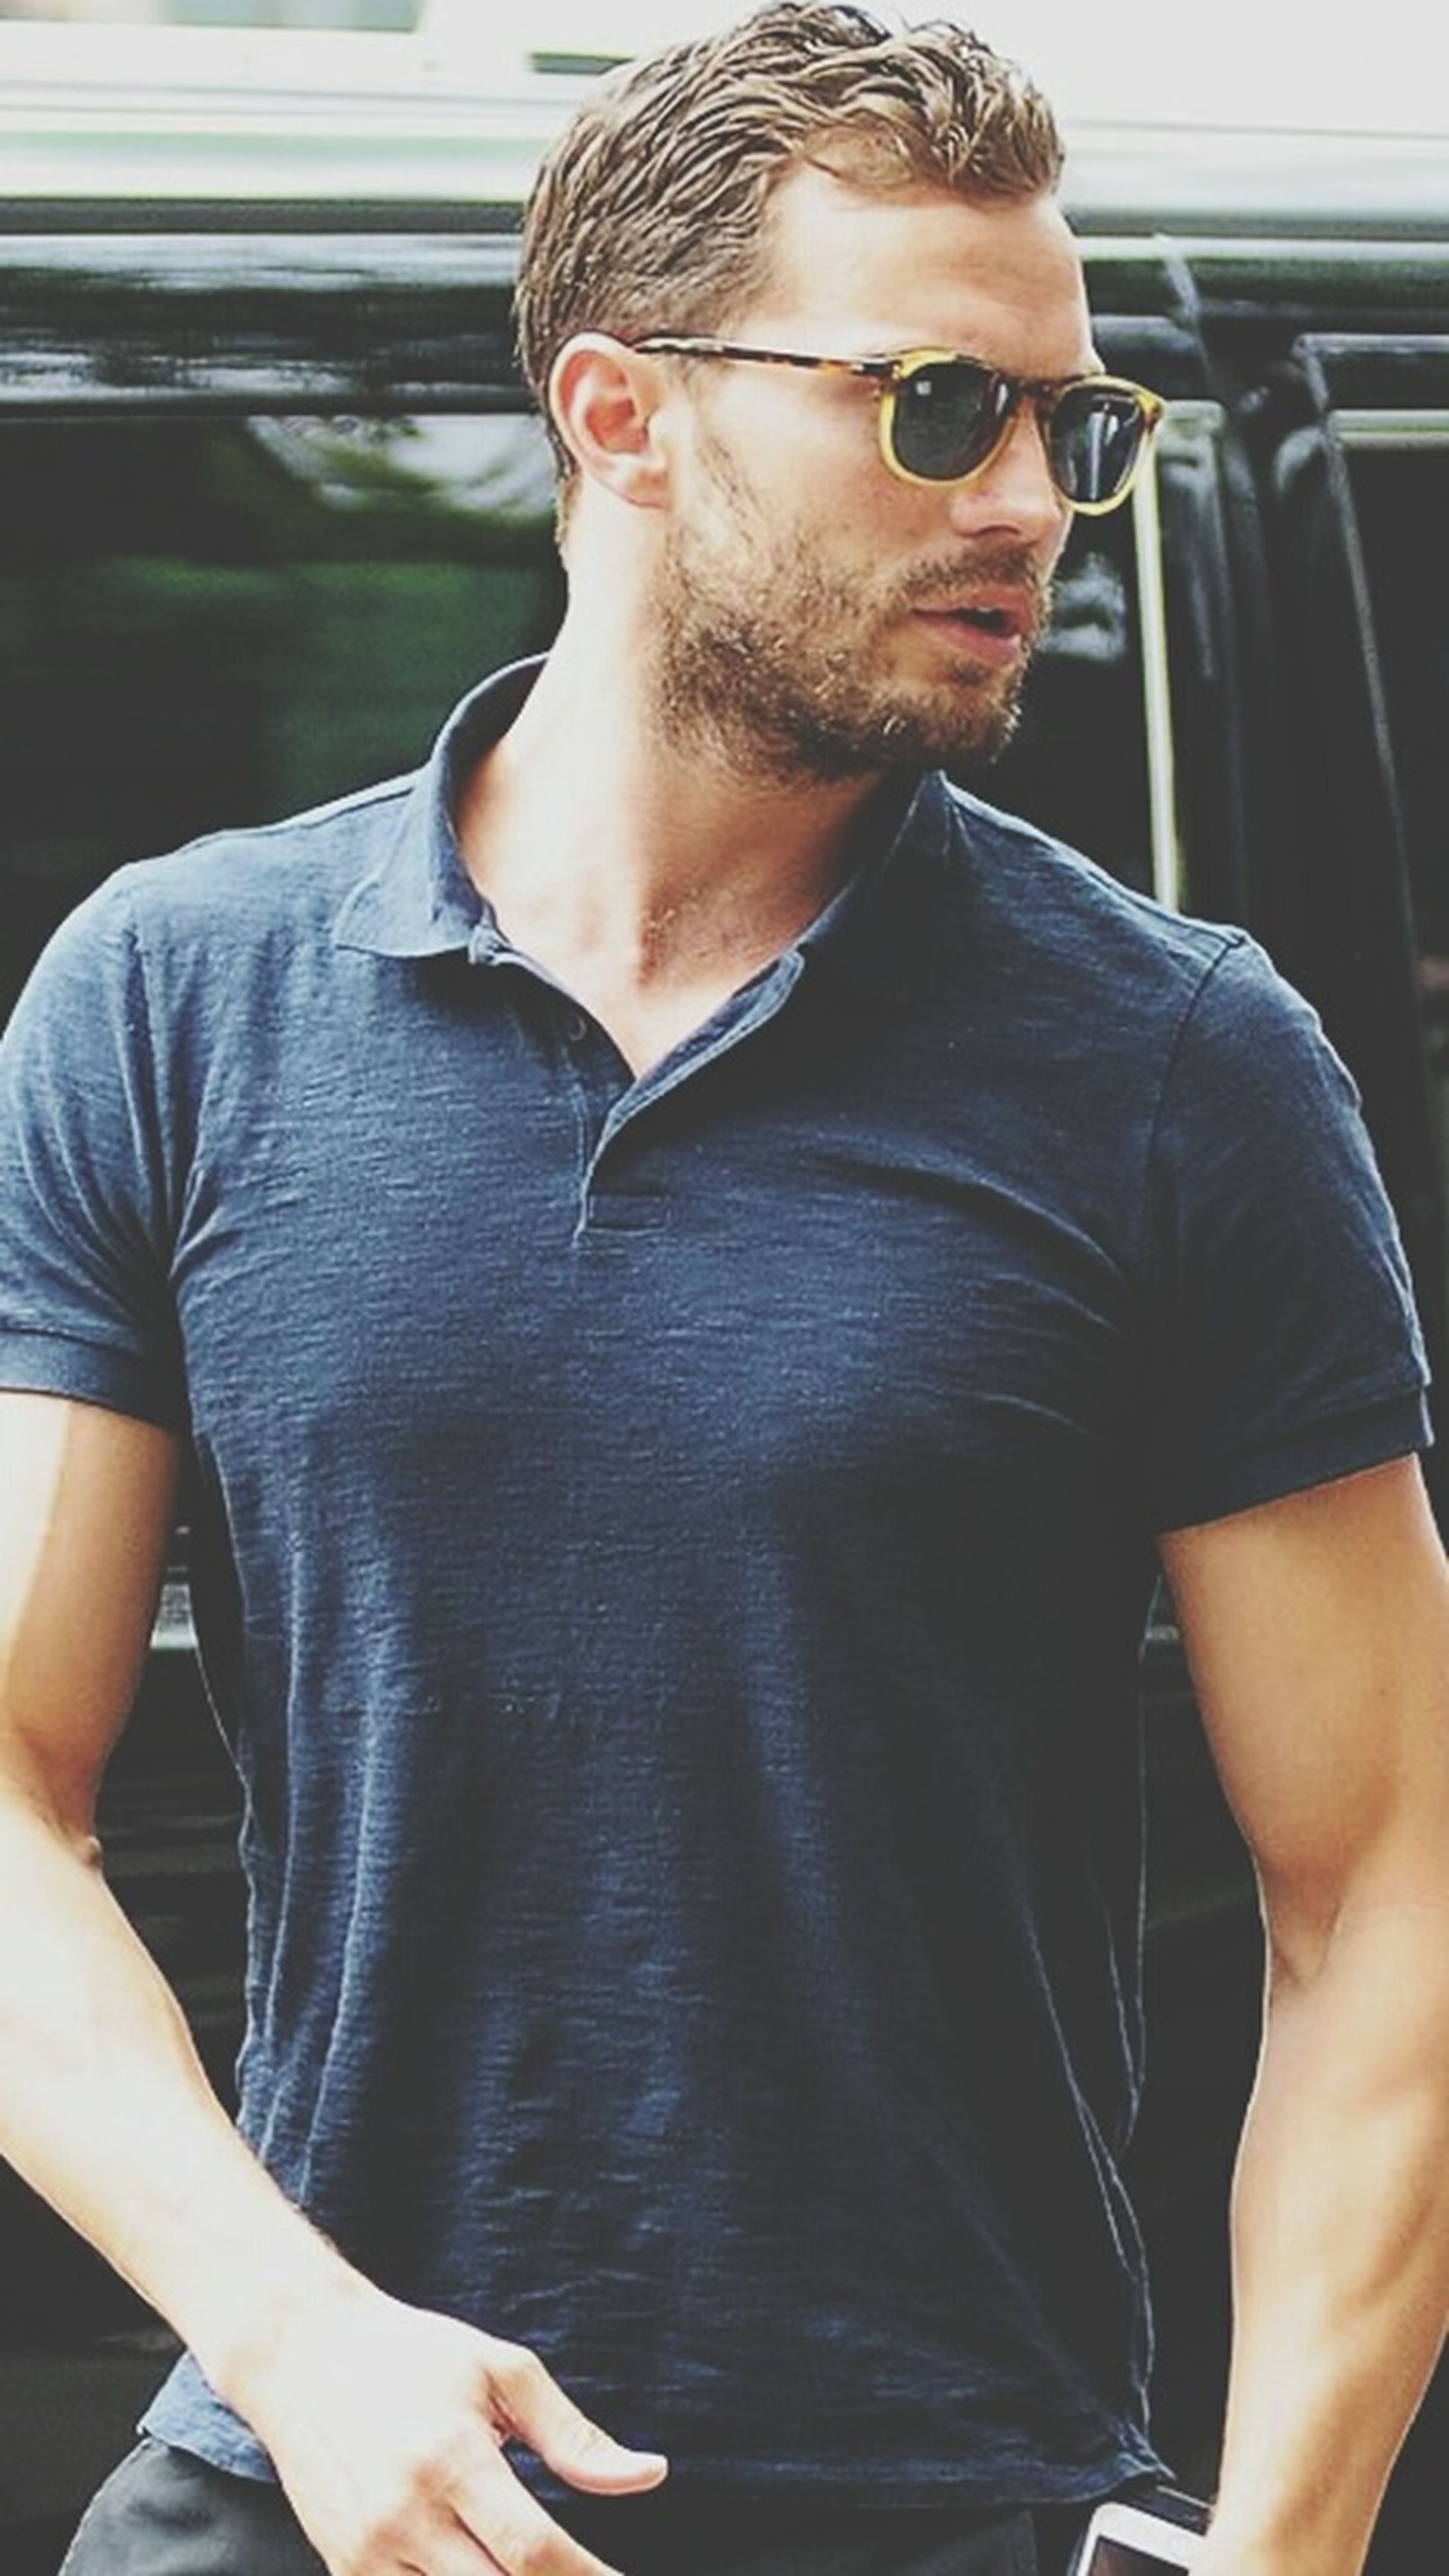 waist up, standing, casual clothing, business, young adult, t-shirt, front view, well-dressed, confidence, person, handsome, youth culture